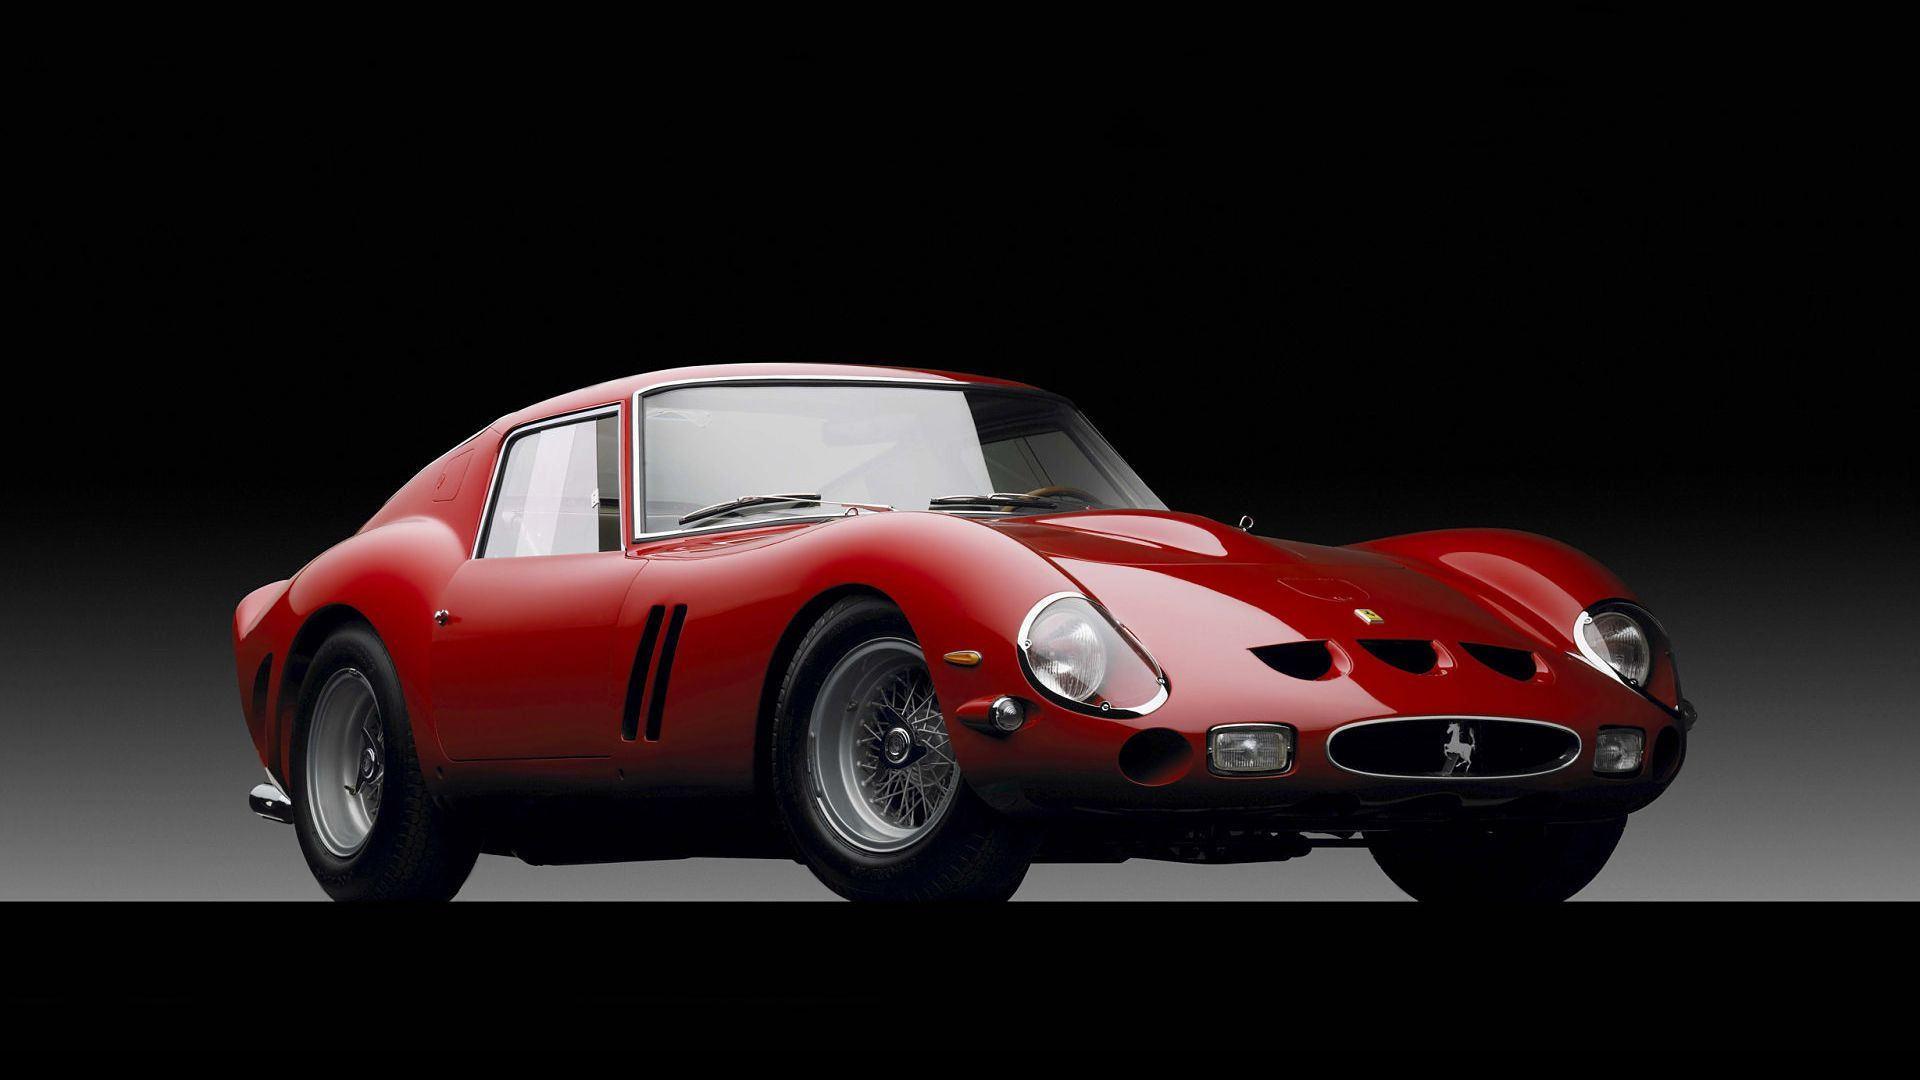 Ferrari 250 Gto Wallpapers Top Free Ferrari 250 Gto Backgrounds Wallpaperaccess